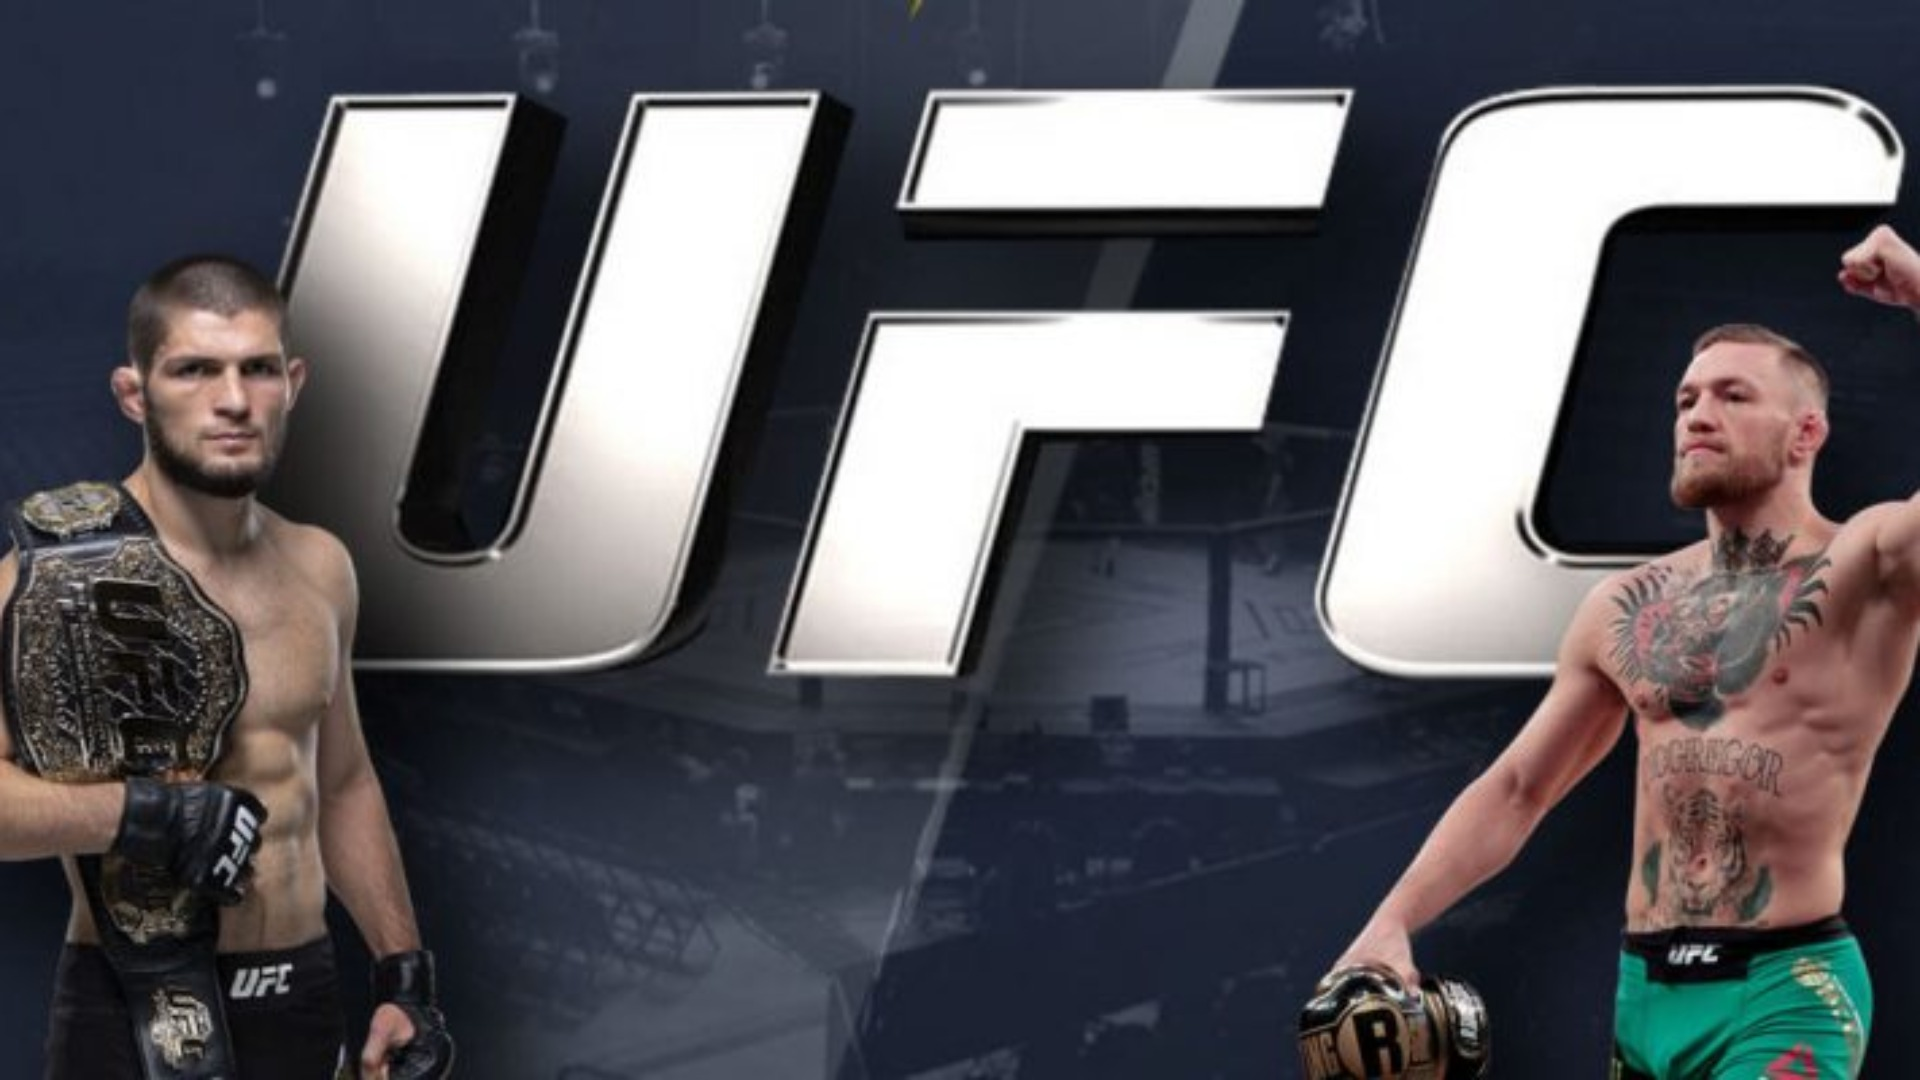 The Ultimate Fighting Championship (UFC) is an American mixed martial arts (MMA) promotion company based in Las Vegas, Nevada, which is owned and operated by Endeavor Group Holdings along with Silver Lake Partners, Kohlberg Kravis Roberts and MSD Capital via Zuffa, LLC. It is the largest MMA promotion company in the world and features some of the highest-level fighters in the sport on its roster. The UFC produces events worldwide that showcase twelve weight divisions (eight men's divisions and four women's divisions) and abides by the Unified Rules of Mixed Martial Arts. As of 2020, the UFC has held over 500 events. Dana White has been UFC president since 2001. Under White's stewardship, the UFC has grown into a globally popular multi-billion-dollar enterprise.Wikipedia